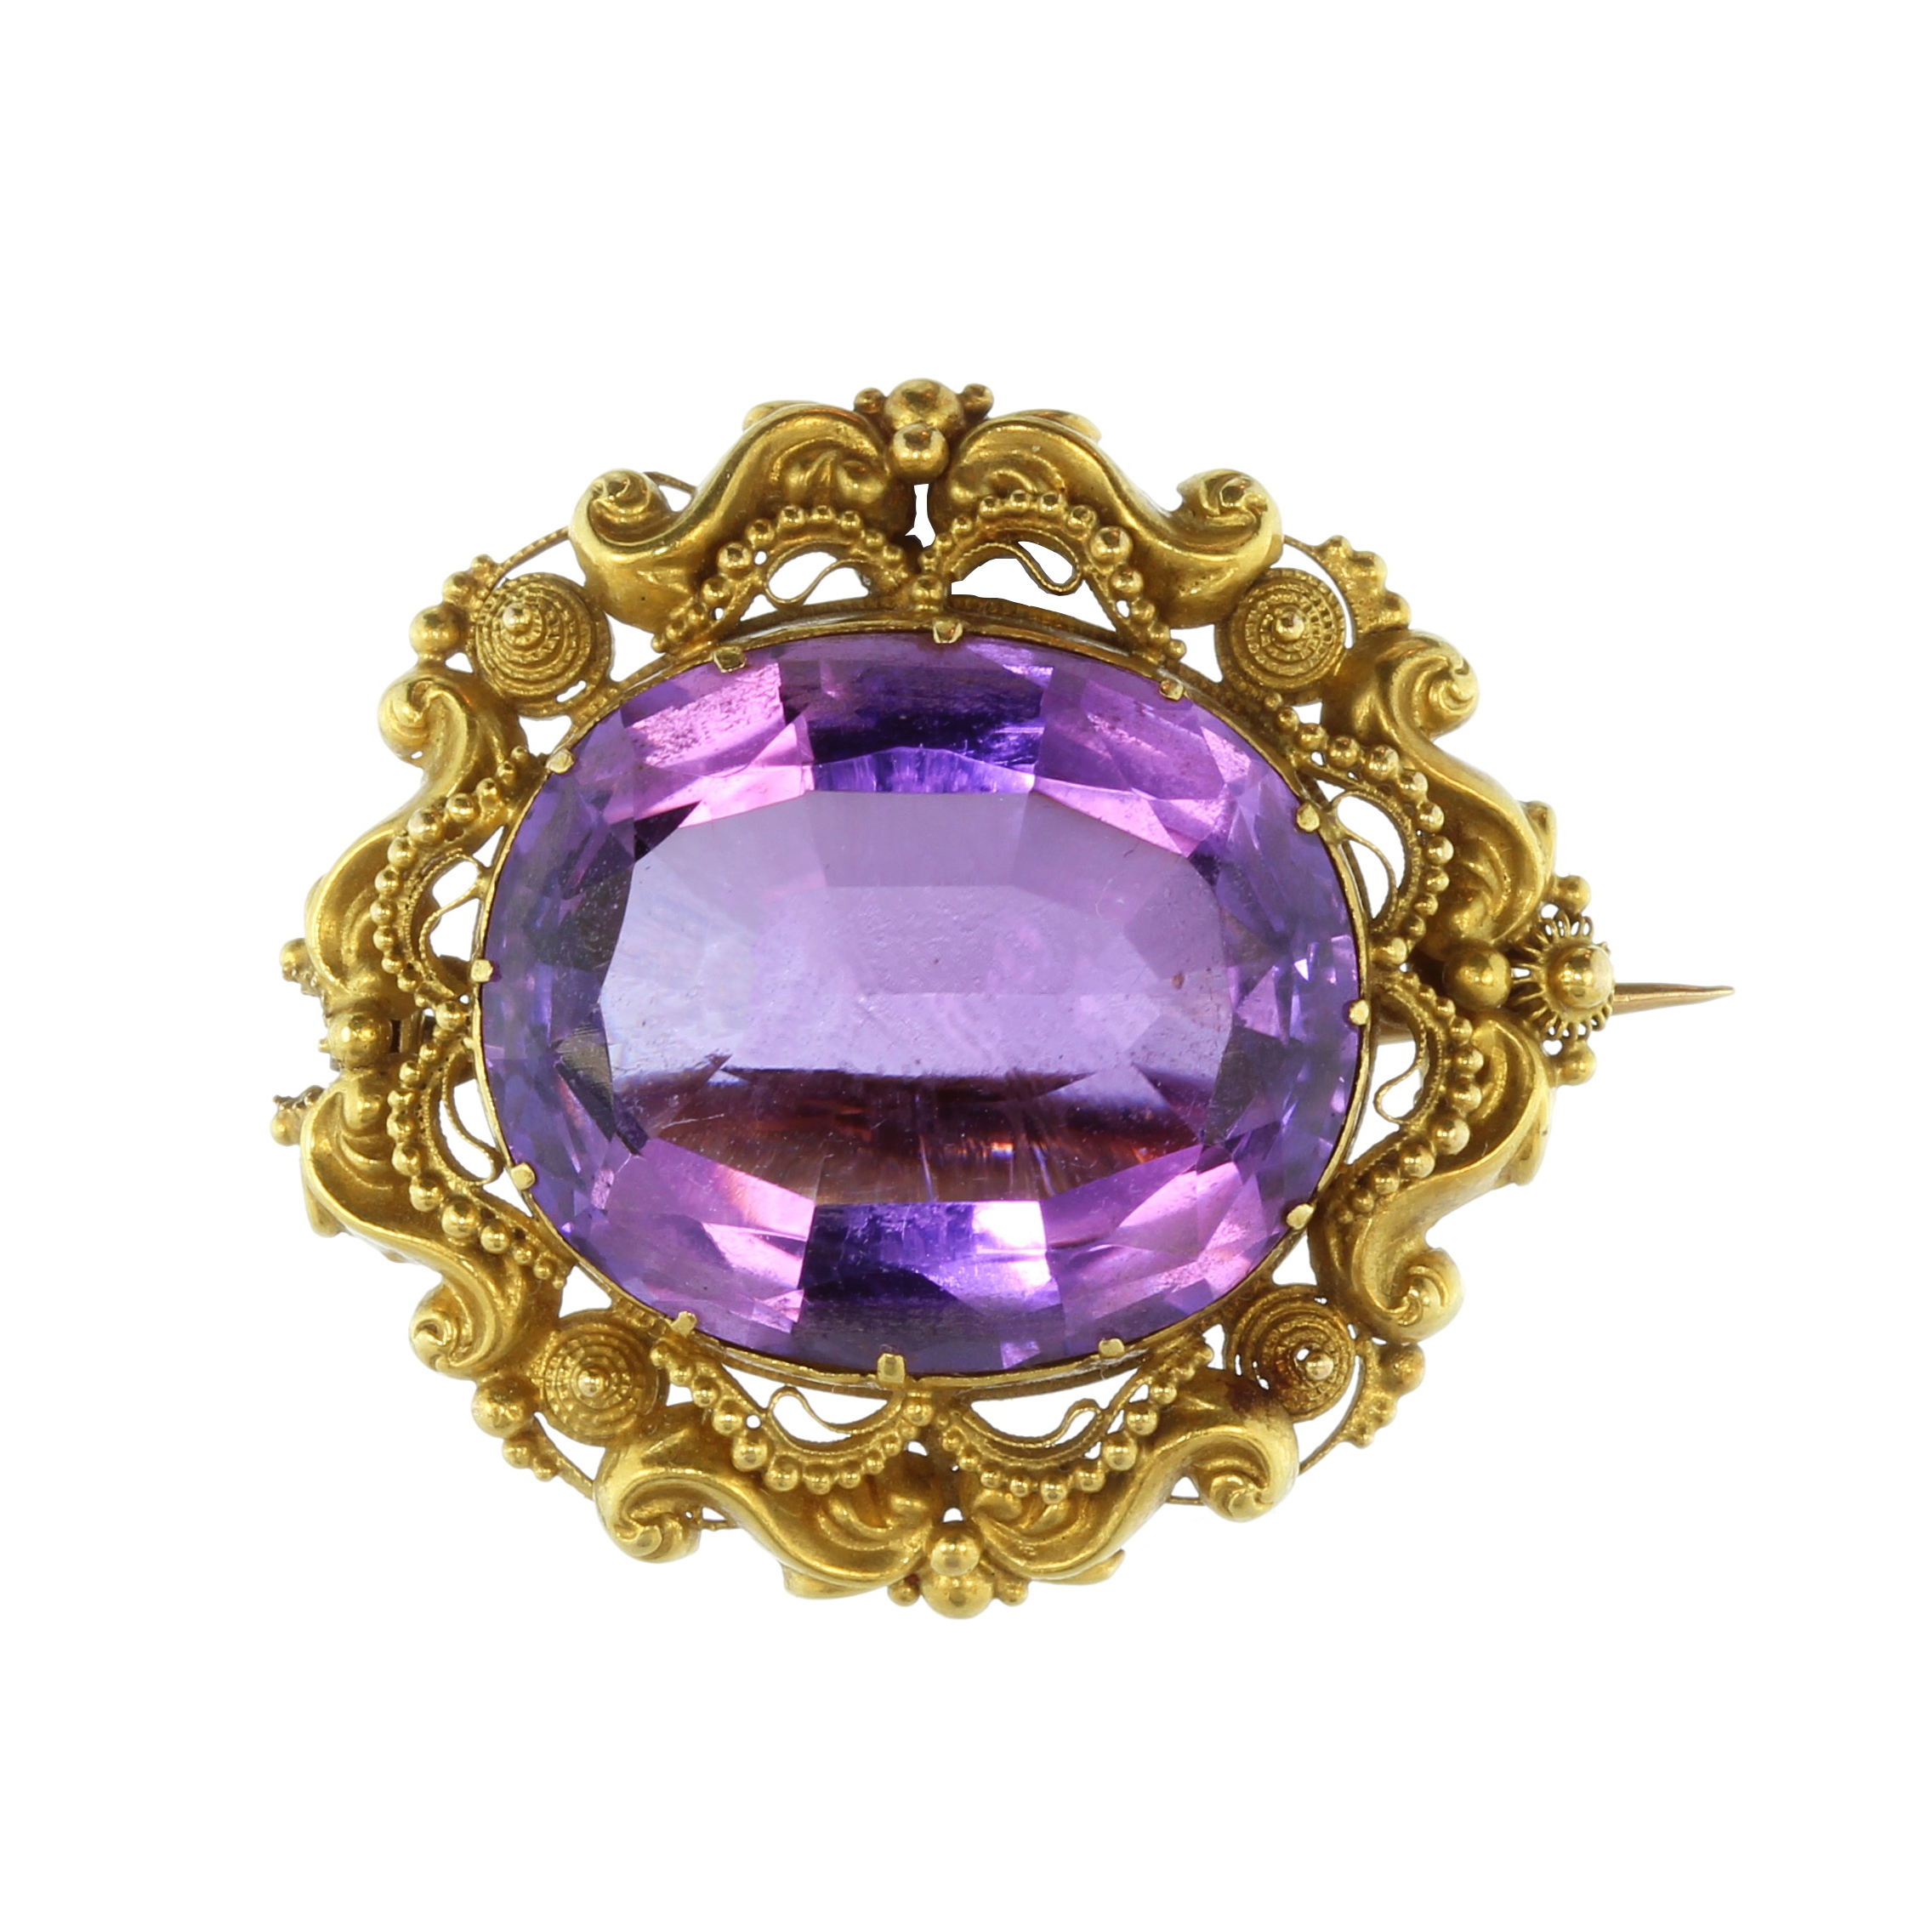 Los 9 - An antique 19th Century amethyst brooch in yellow gold set with a large oval cut amethyst weighing